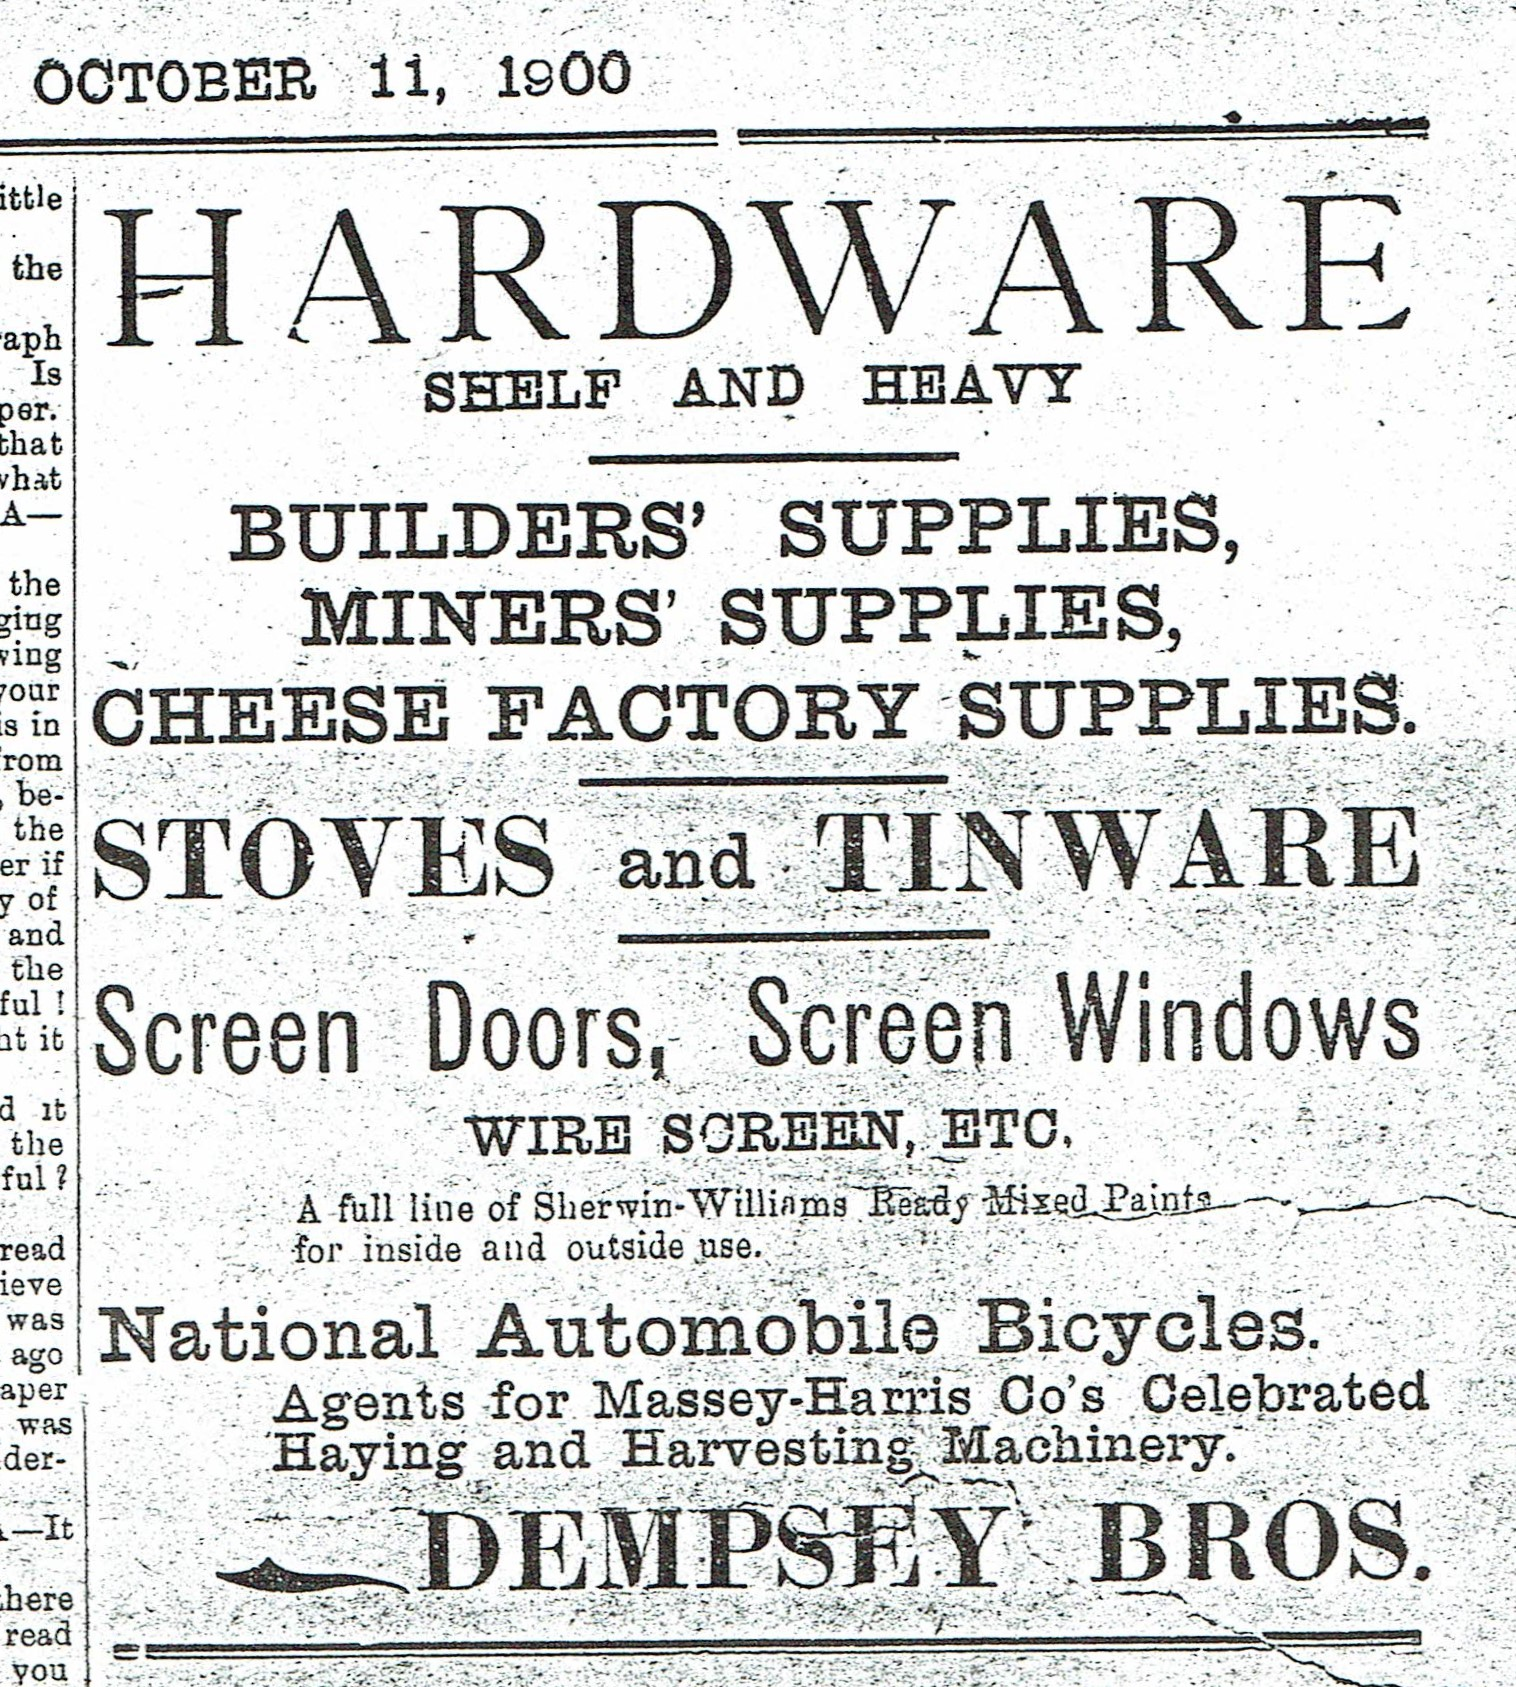 Dempsey Brothers Hardware 1900.jpg